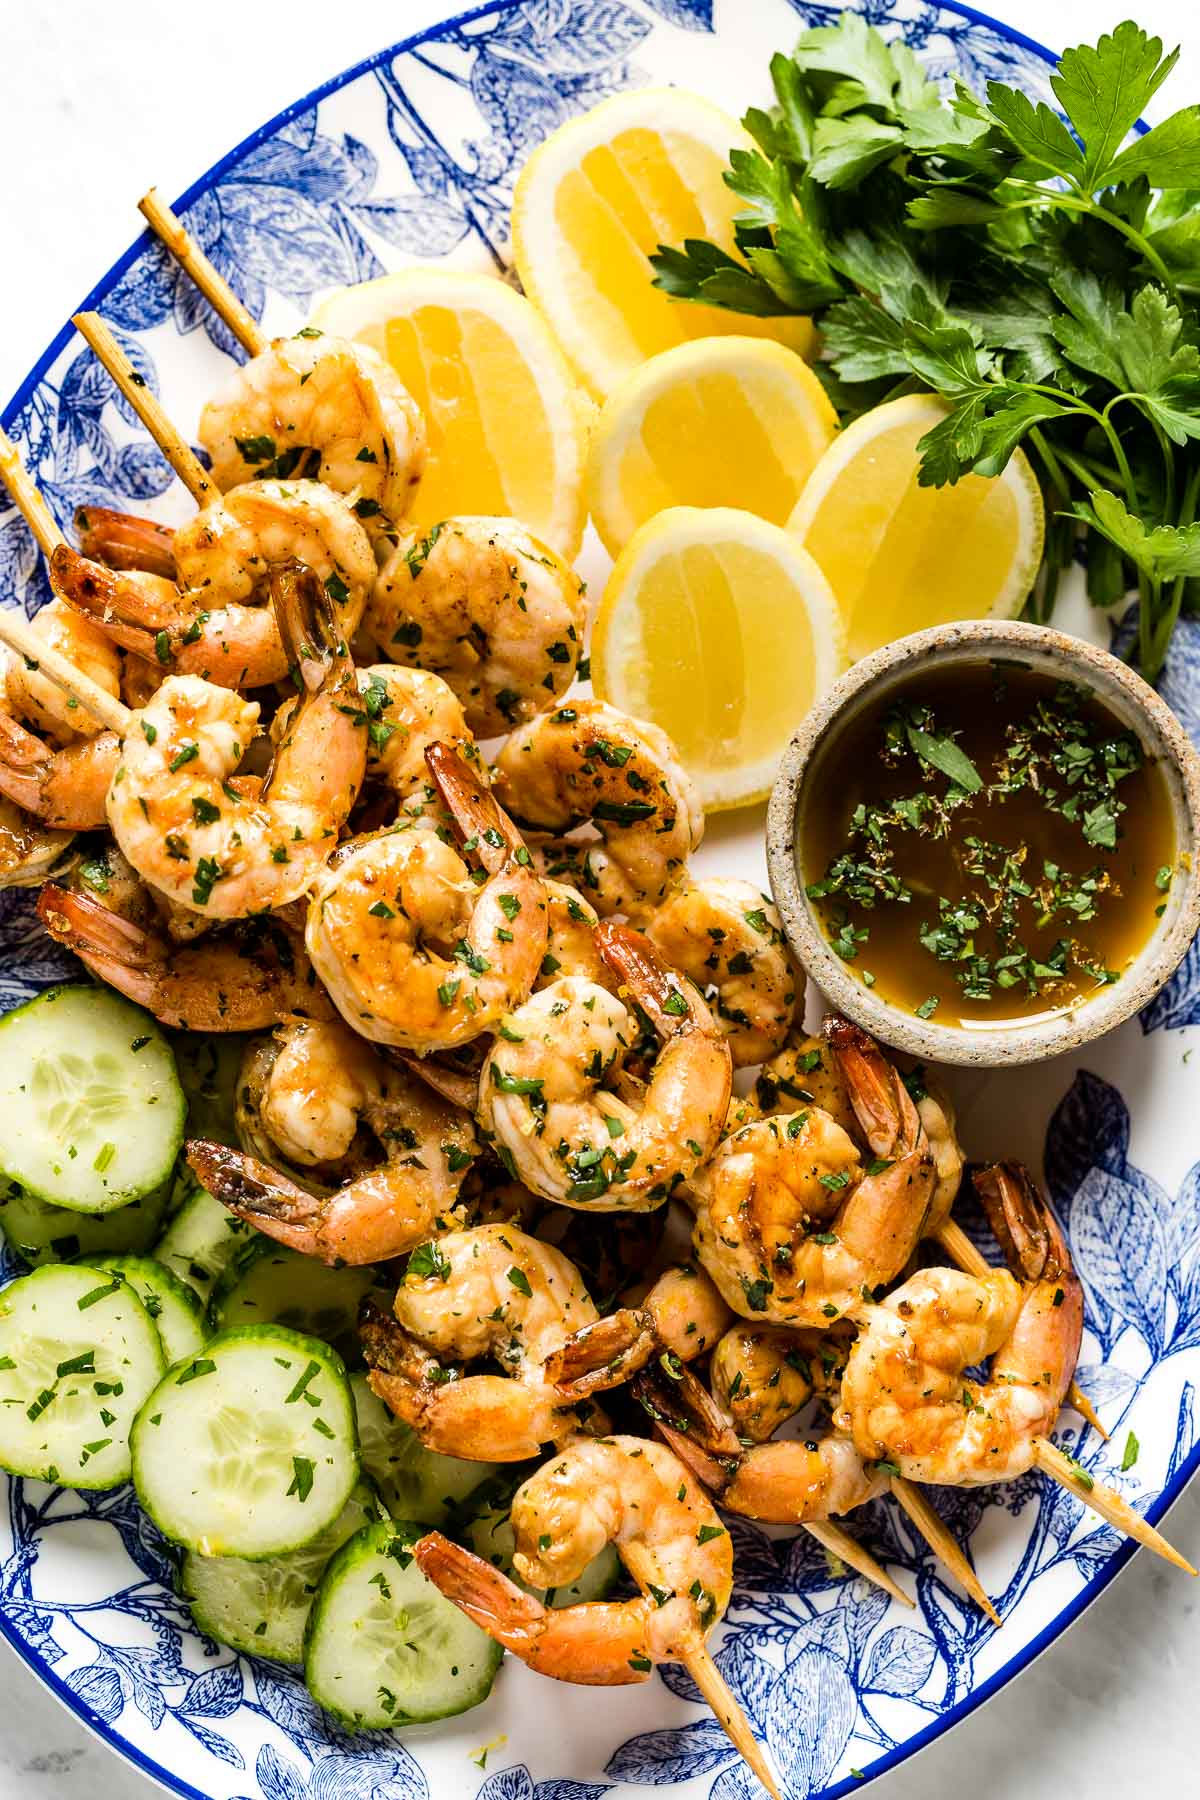 Grilled Shrimp Skewers on a plate with lemon slices, fresh parsley and cucumber slices